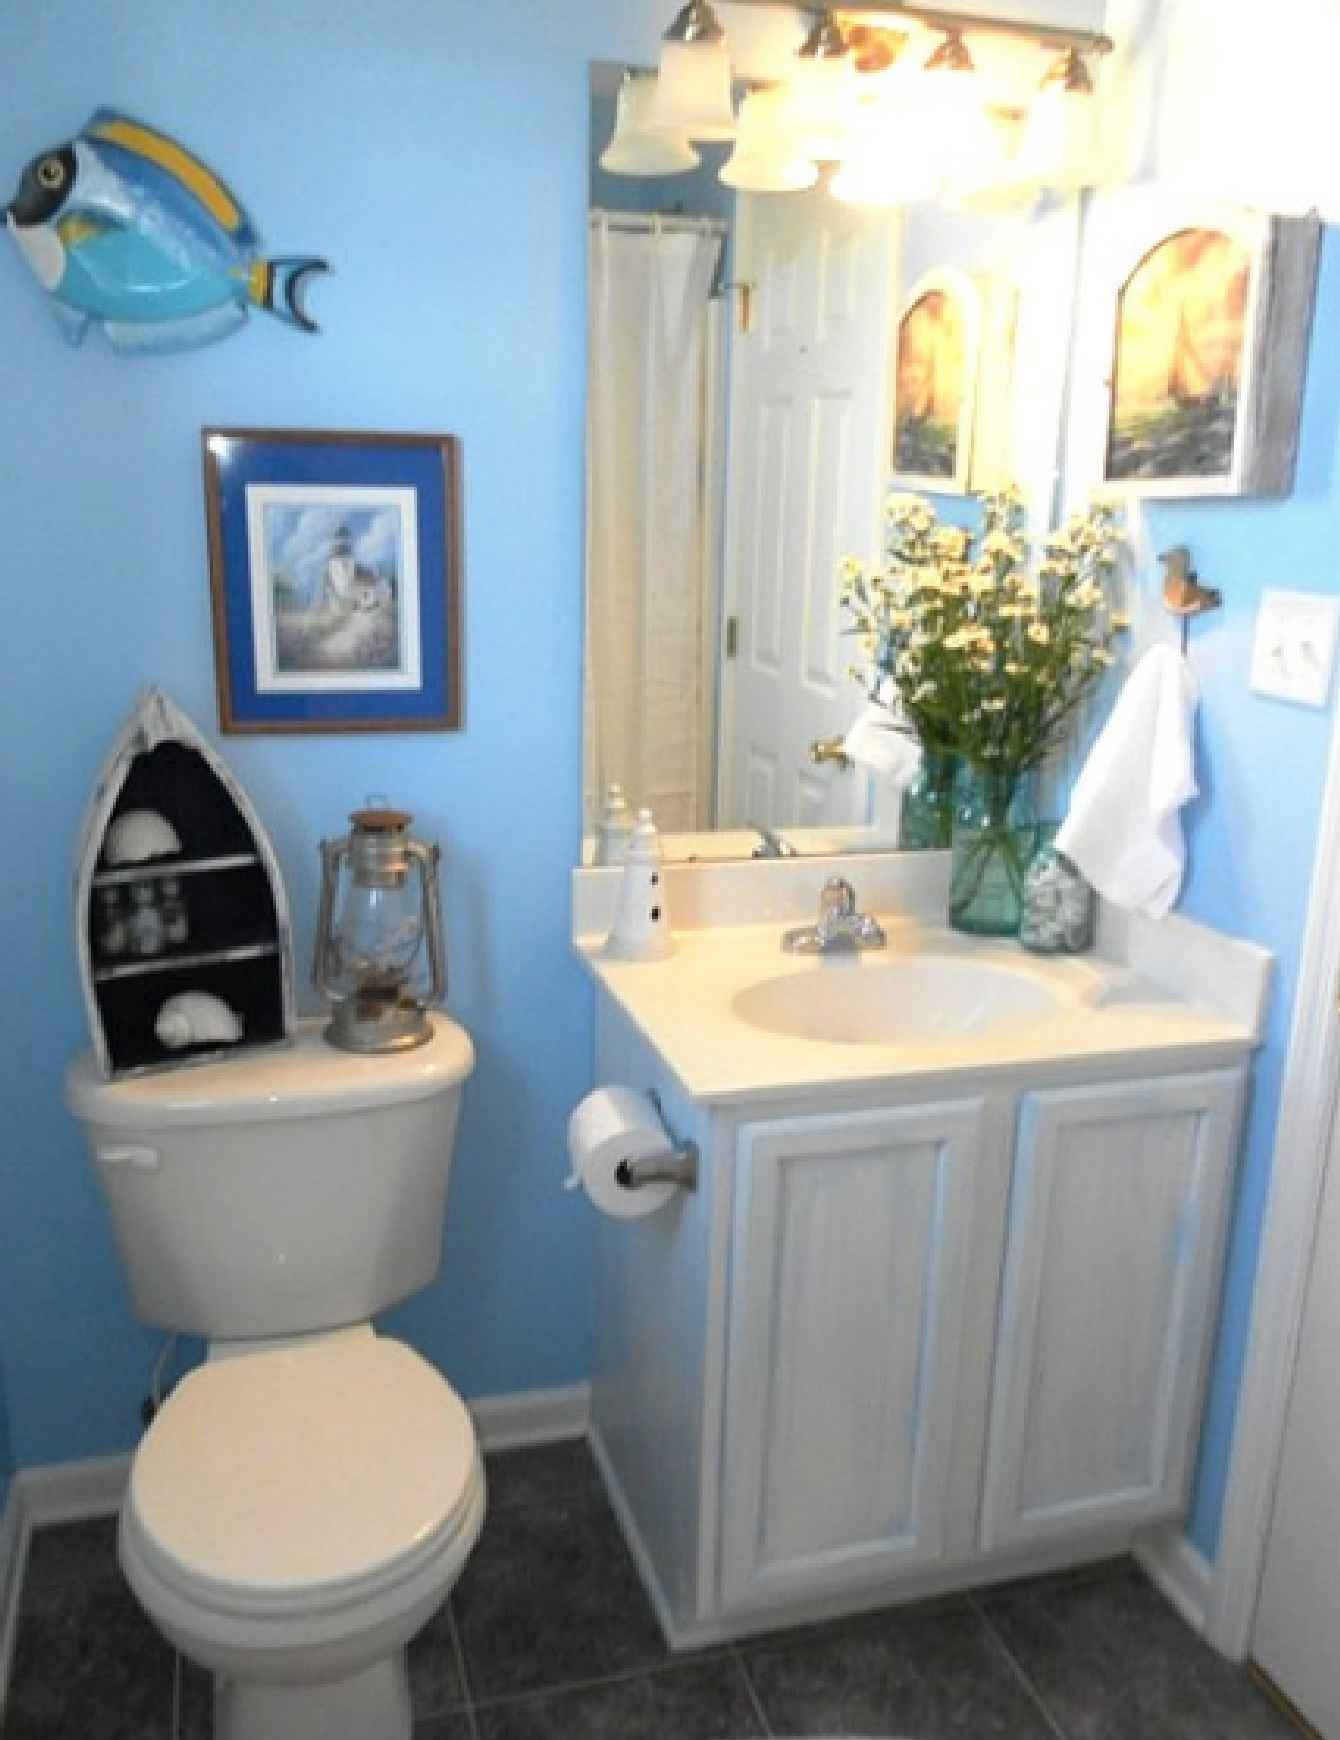 Charmant Bathroom Theme Ideas Fantastic Brilliant Small Bathroom Themes In Interior  Remodel Ideas With Architecture